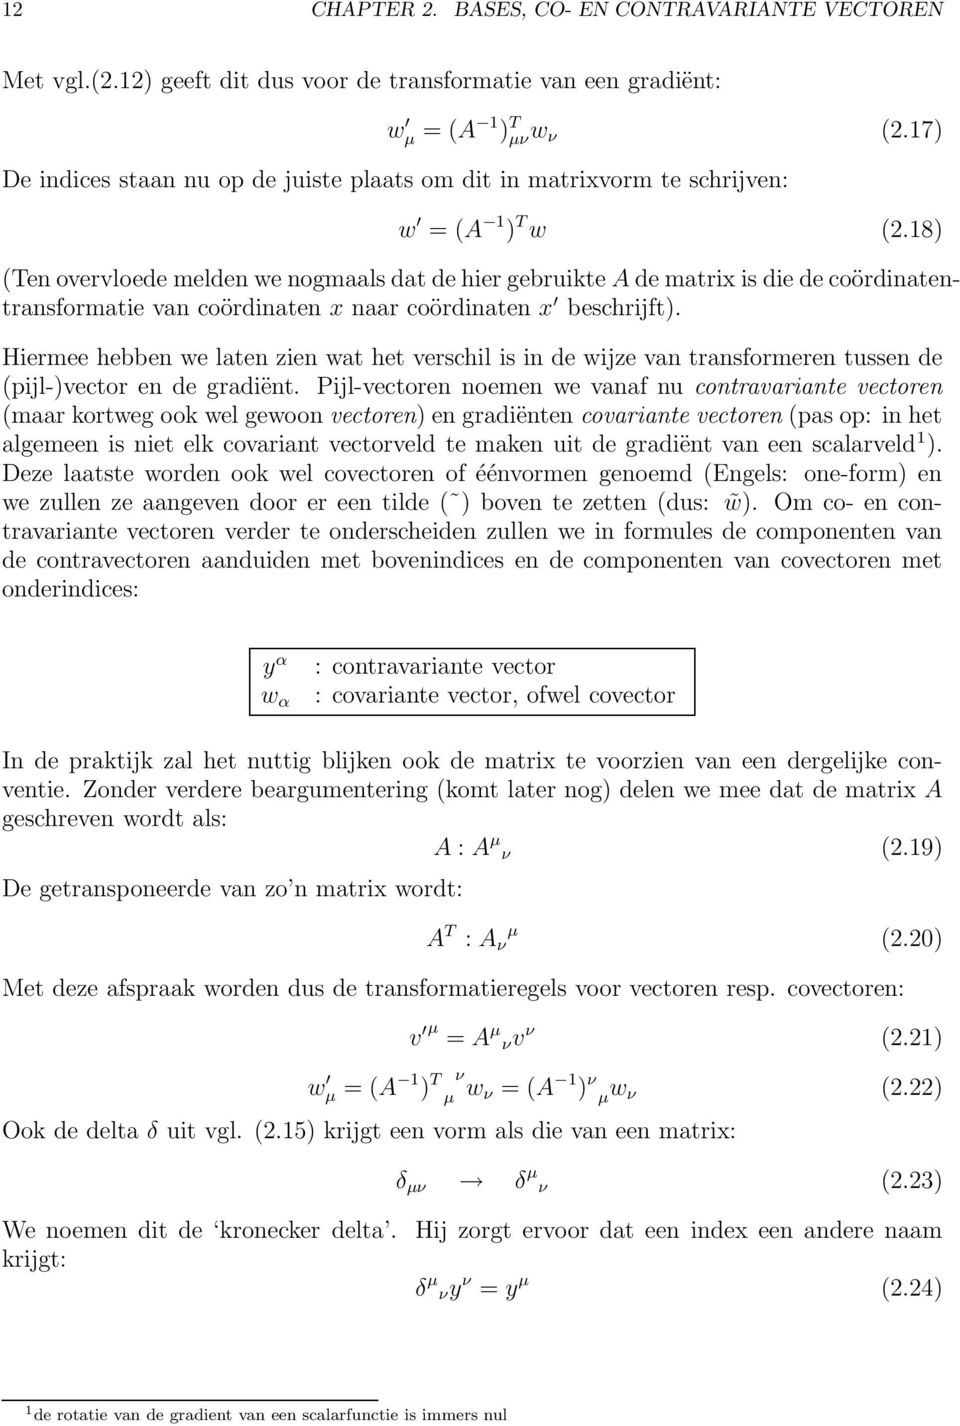 nelson calculus and vectors 12 pdf chapter 5